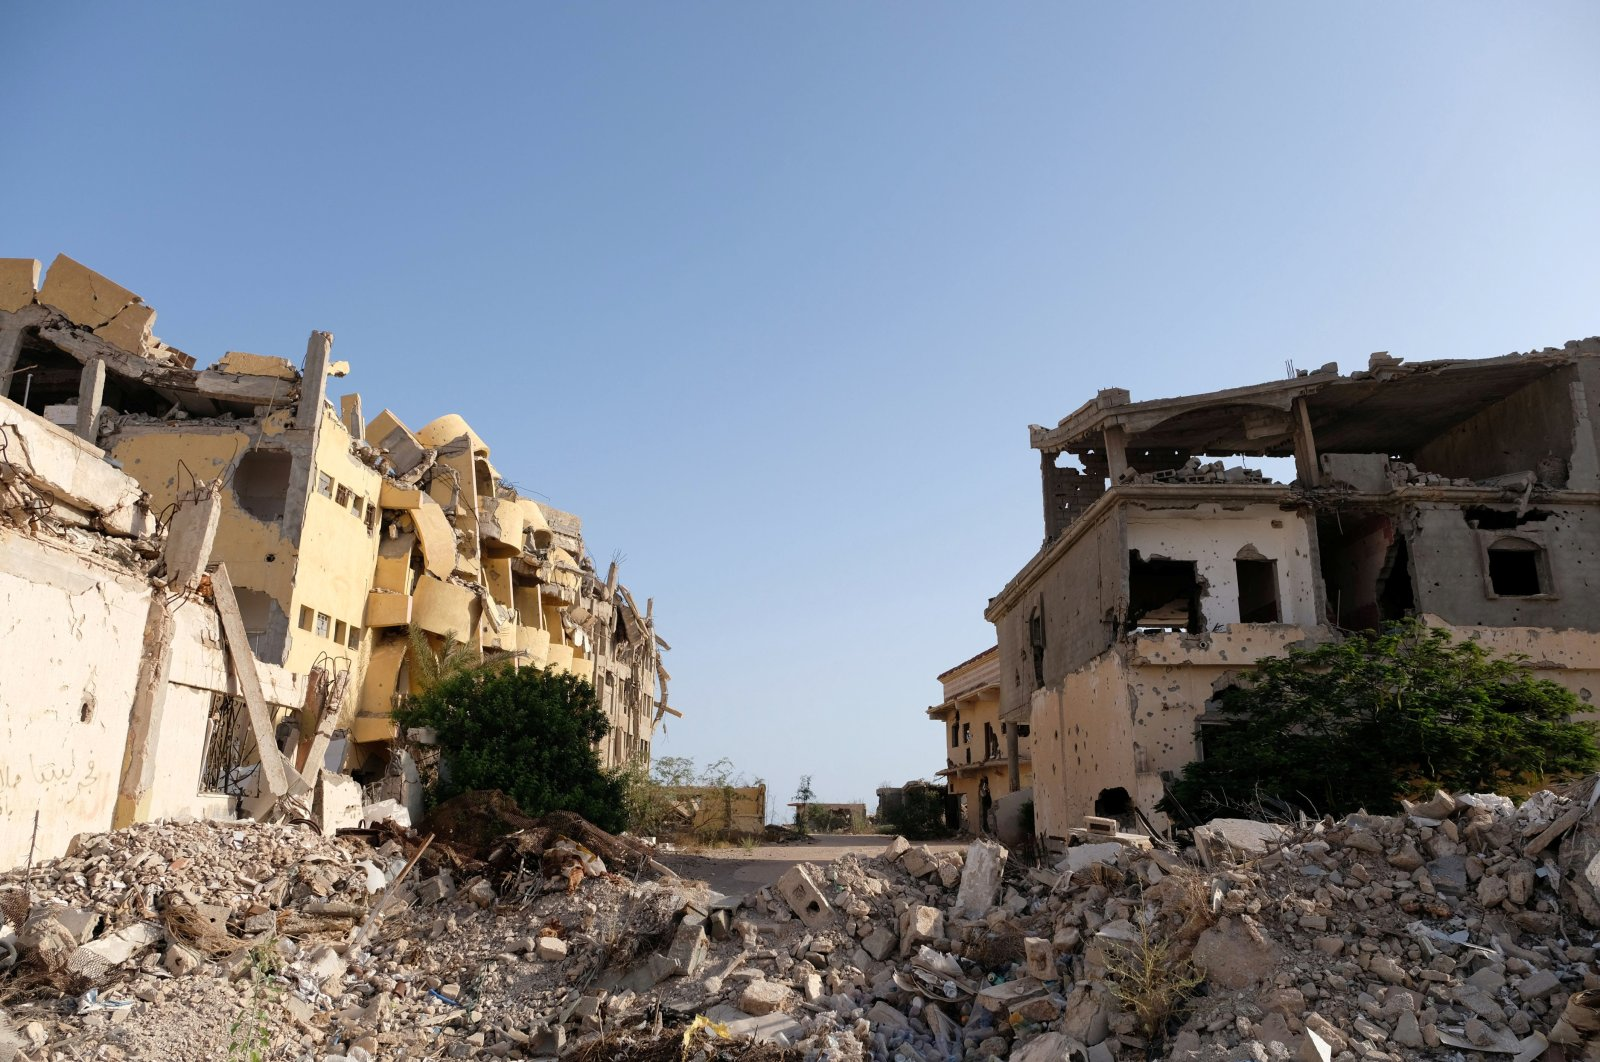 Buildings destroyed during past fighting with Daesh terrorists are seen in Sirte, Libya, Aug. 18, 2020. (Reuters Photo)